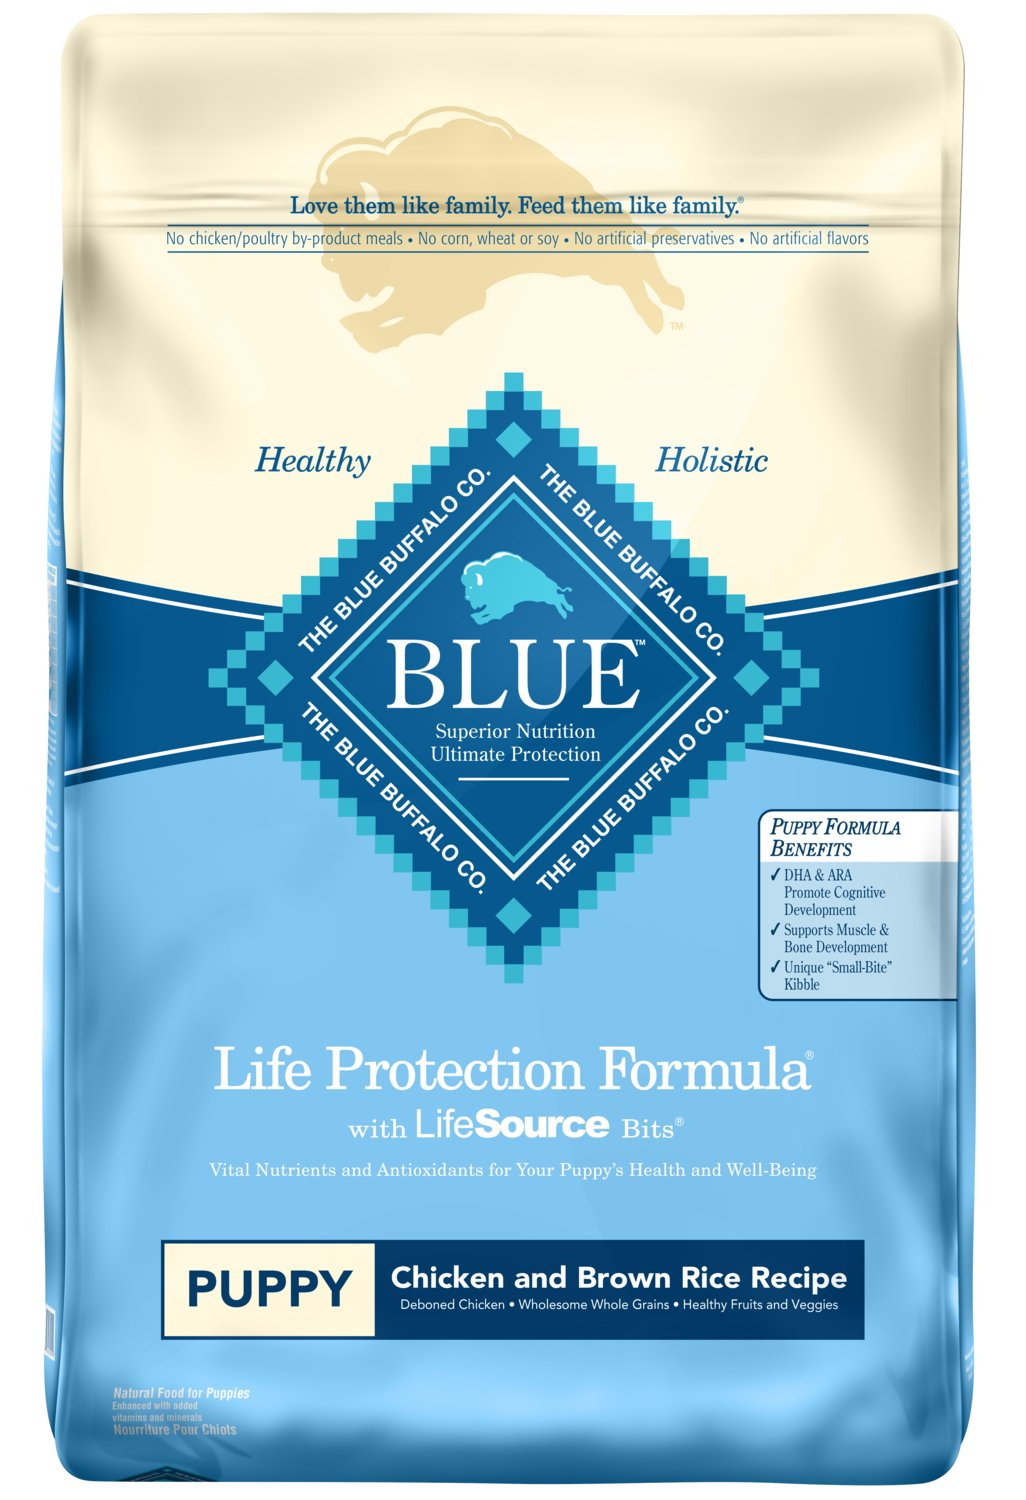 Blue Buffalo Life Protection Formula Puppy Dog Food - Natural Dry Dog Food for Puppies - Chicken and Brown Rice - 30 lb. Bag by Blue Buffalo